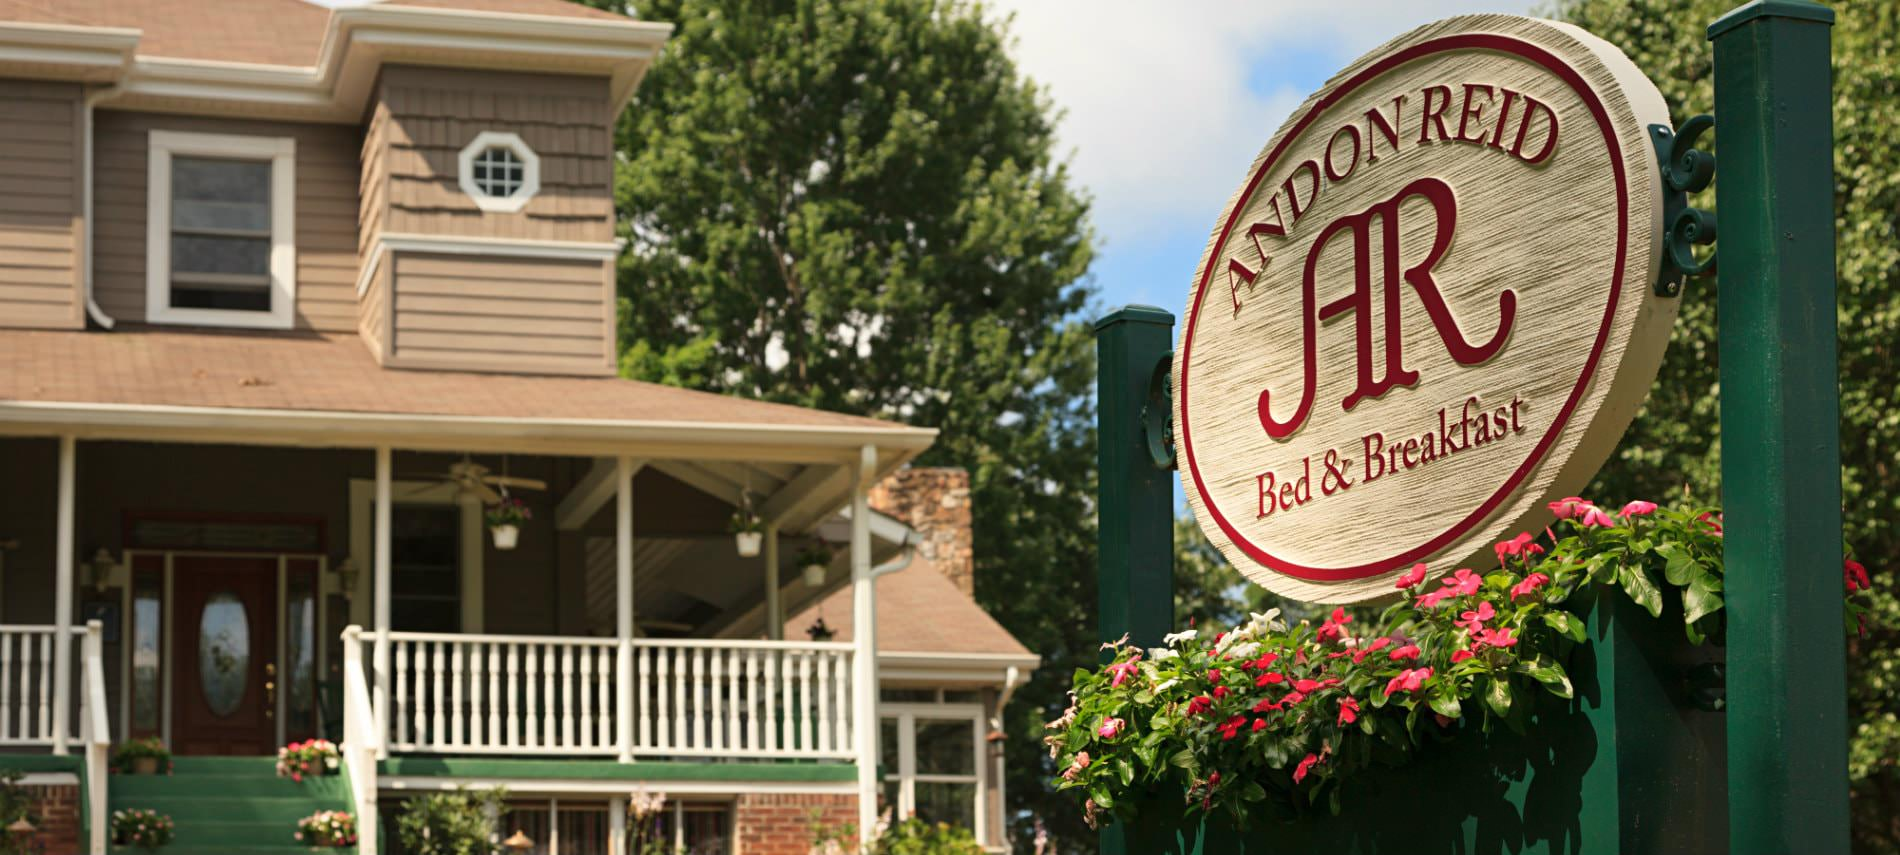 Andon Reid Bed & Breakfast sign hanging on green post with pink flowers, view of brown sided B&B in the background